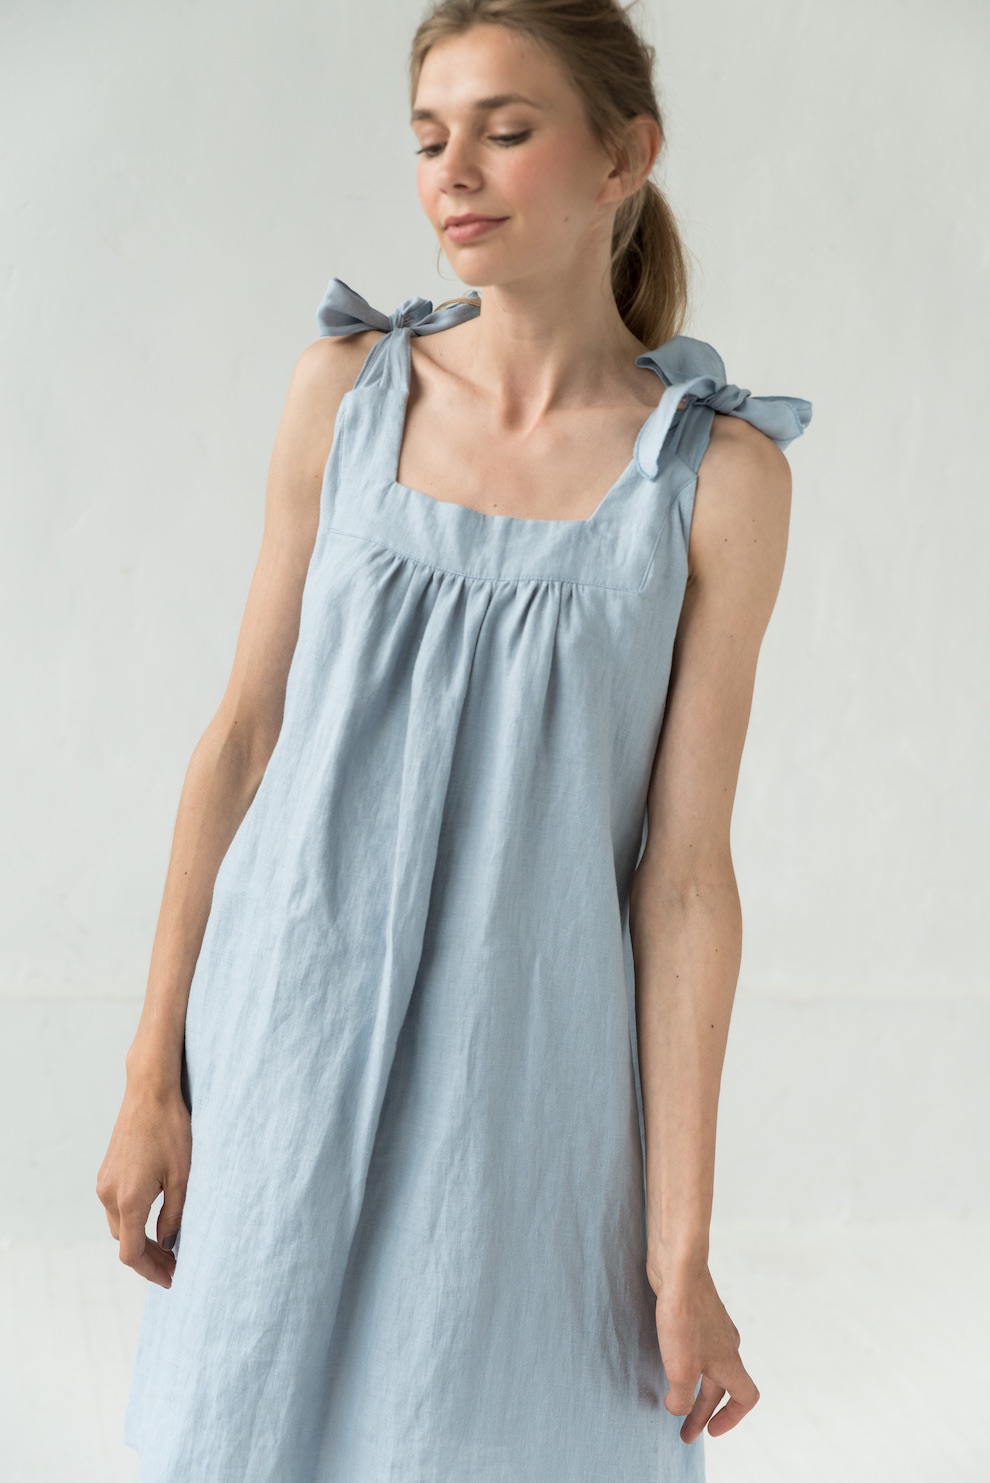 Linen sundress in light blue JULY